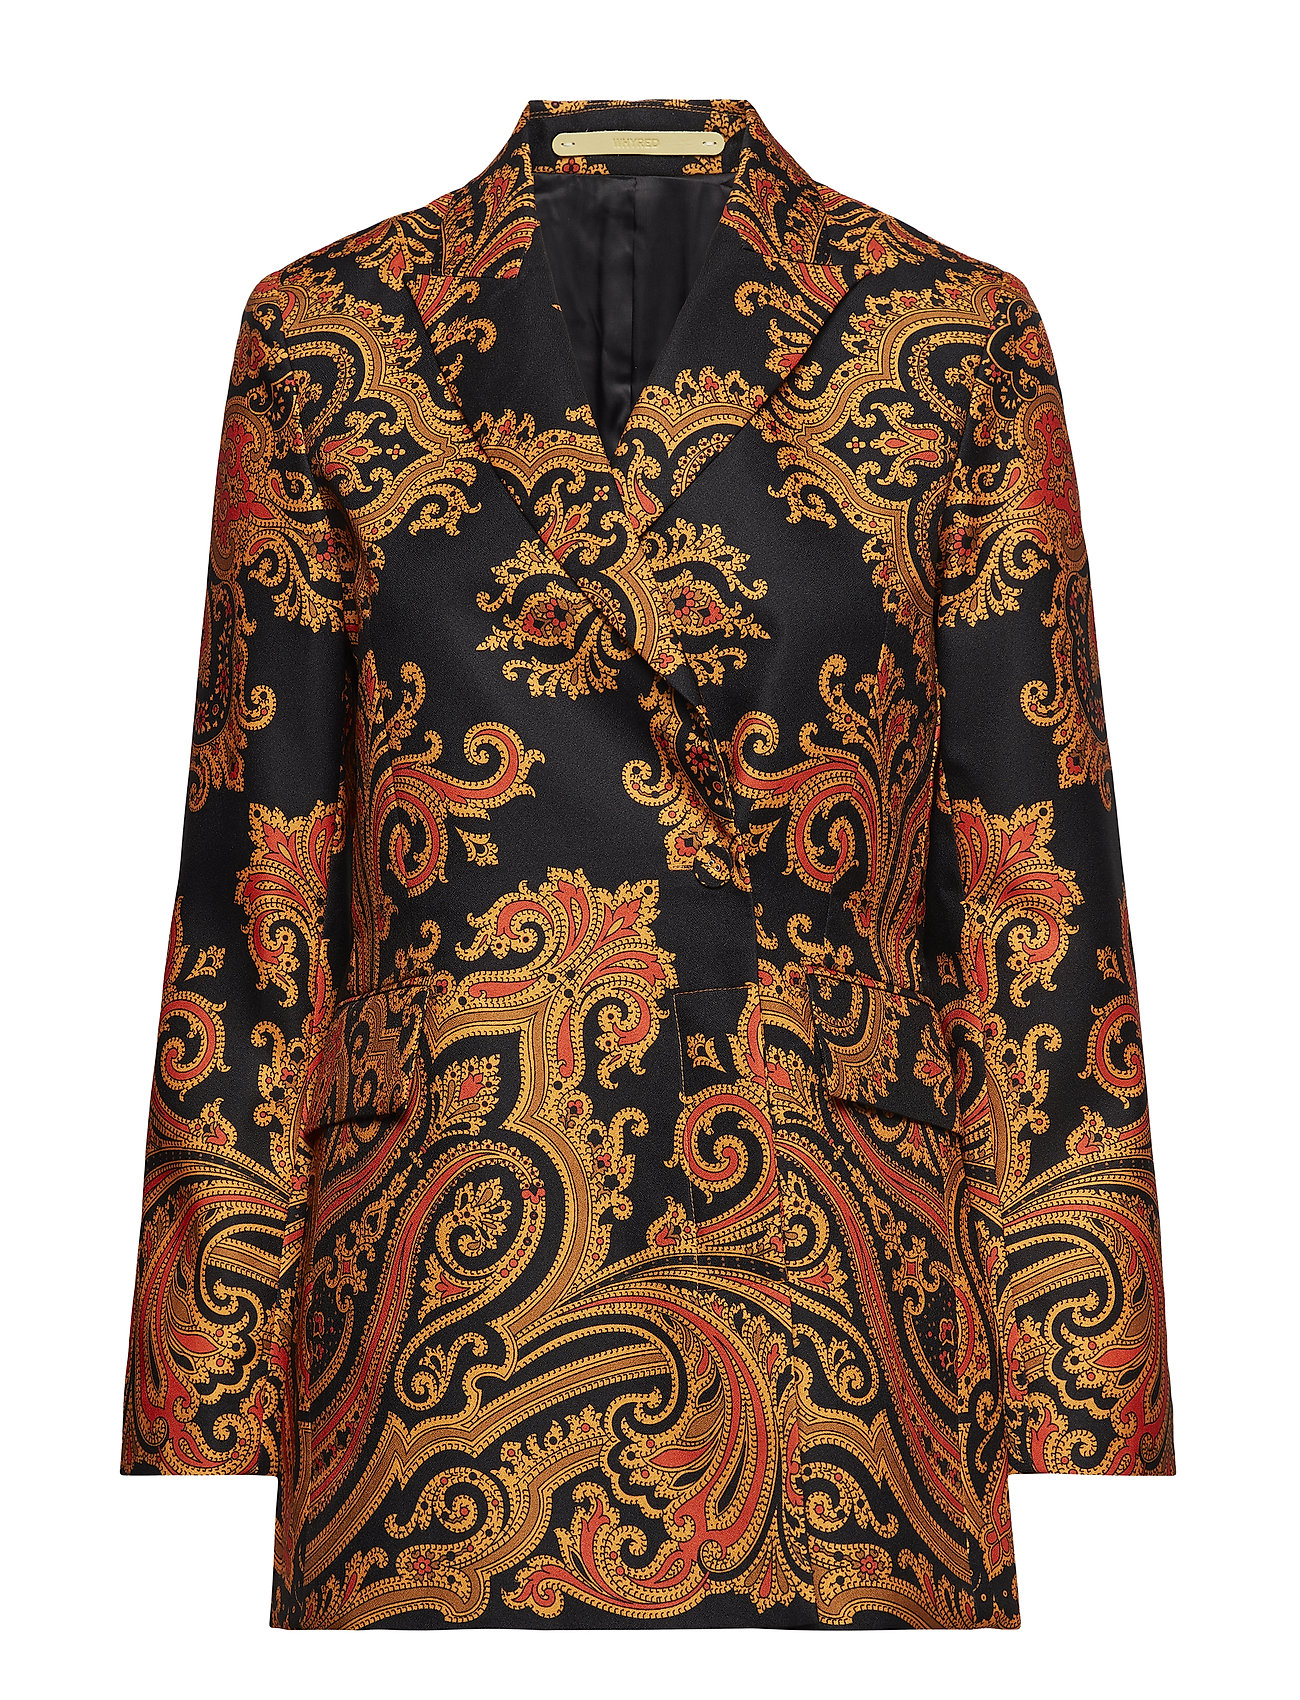 Whyred TROUVE PAISLEY - BLACK